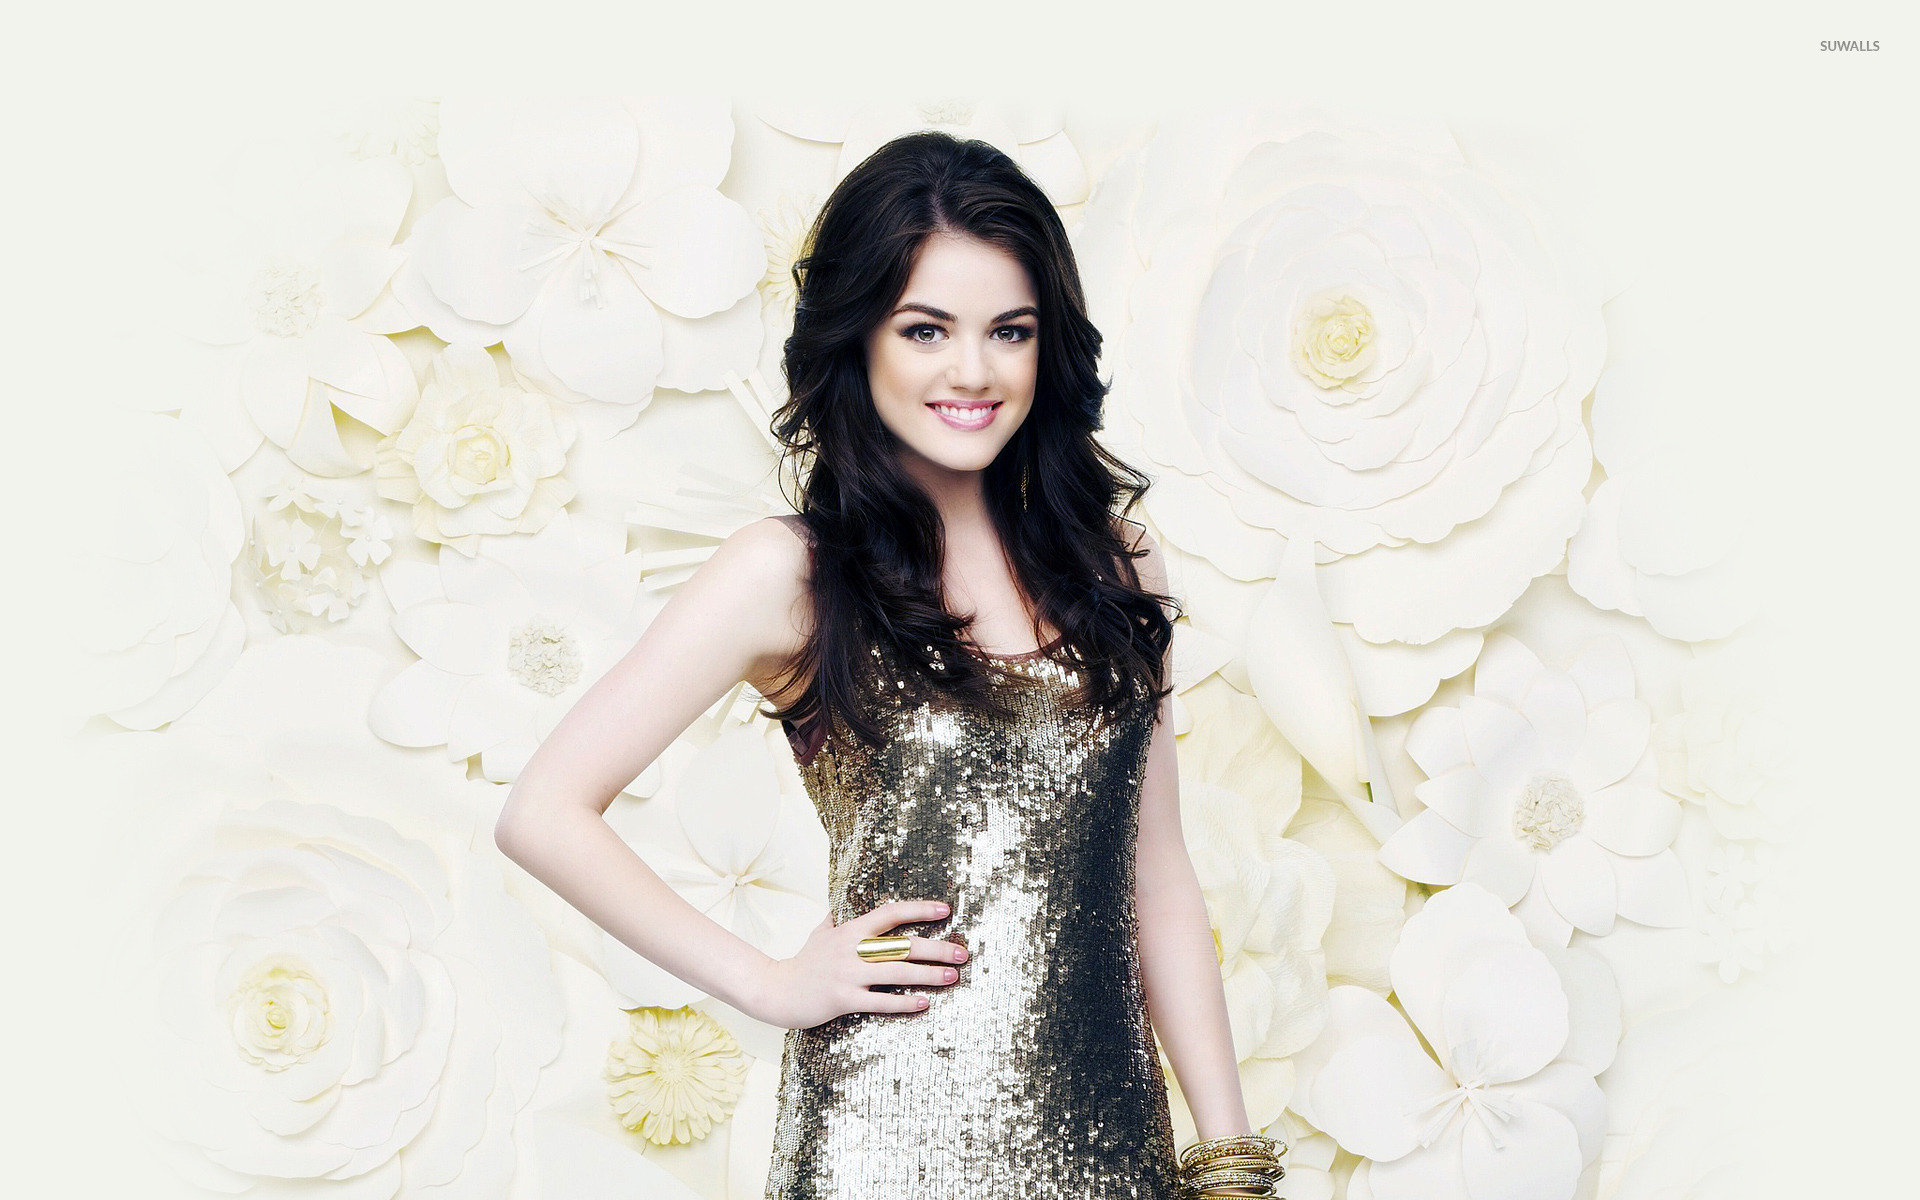 Lucy Hale images Lucy Hale wallpaper and background photos